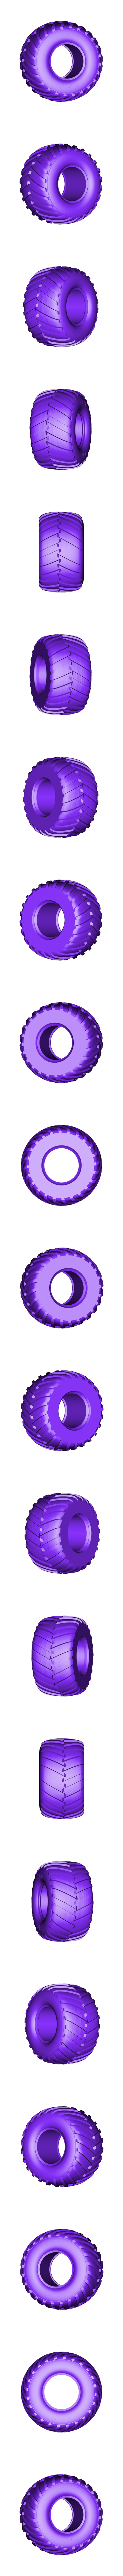 TireRight-narrow.STL Download free STL file Fully printable Monster Truck • 3D printer design, tahustvedt